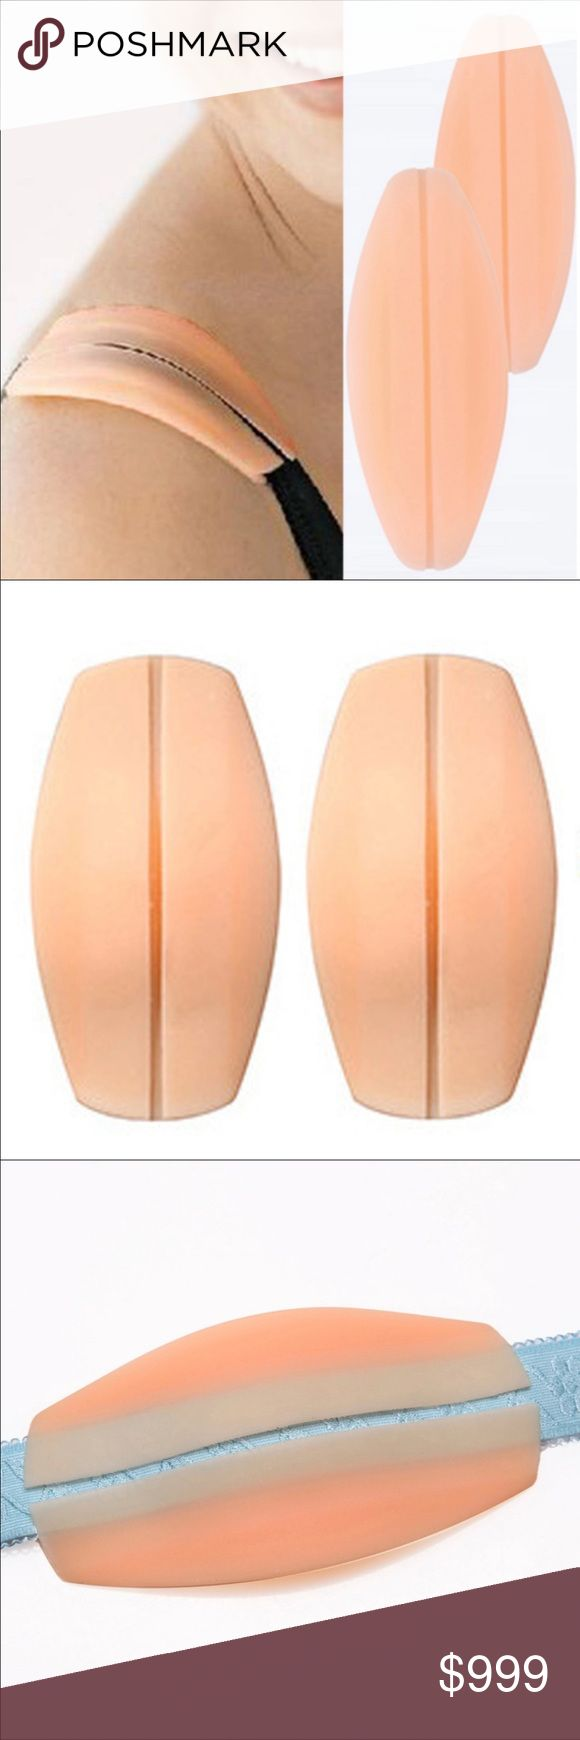 2PC/1Pair Soft Silicone Bra Strap Holder Cushions 2PC/1Pair Soft Silicone Bra Strap Holder Cushions Non-Slip Shoulder Strap Cushions Pads Holder Bra Pads Cushions Relief Pain Intimates & Sleepwear Bras